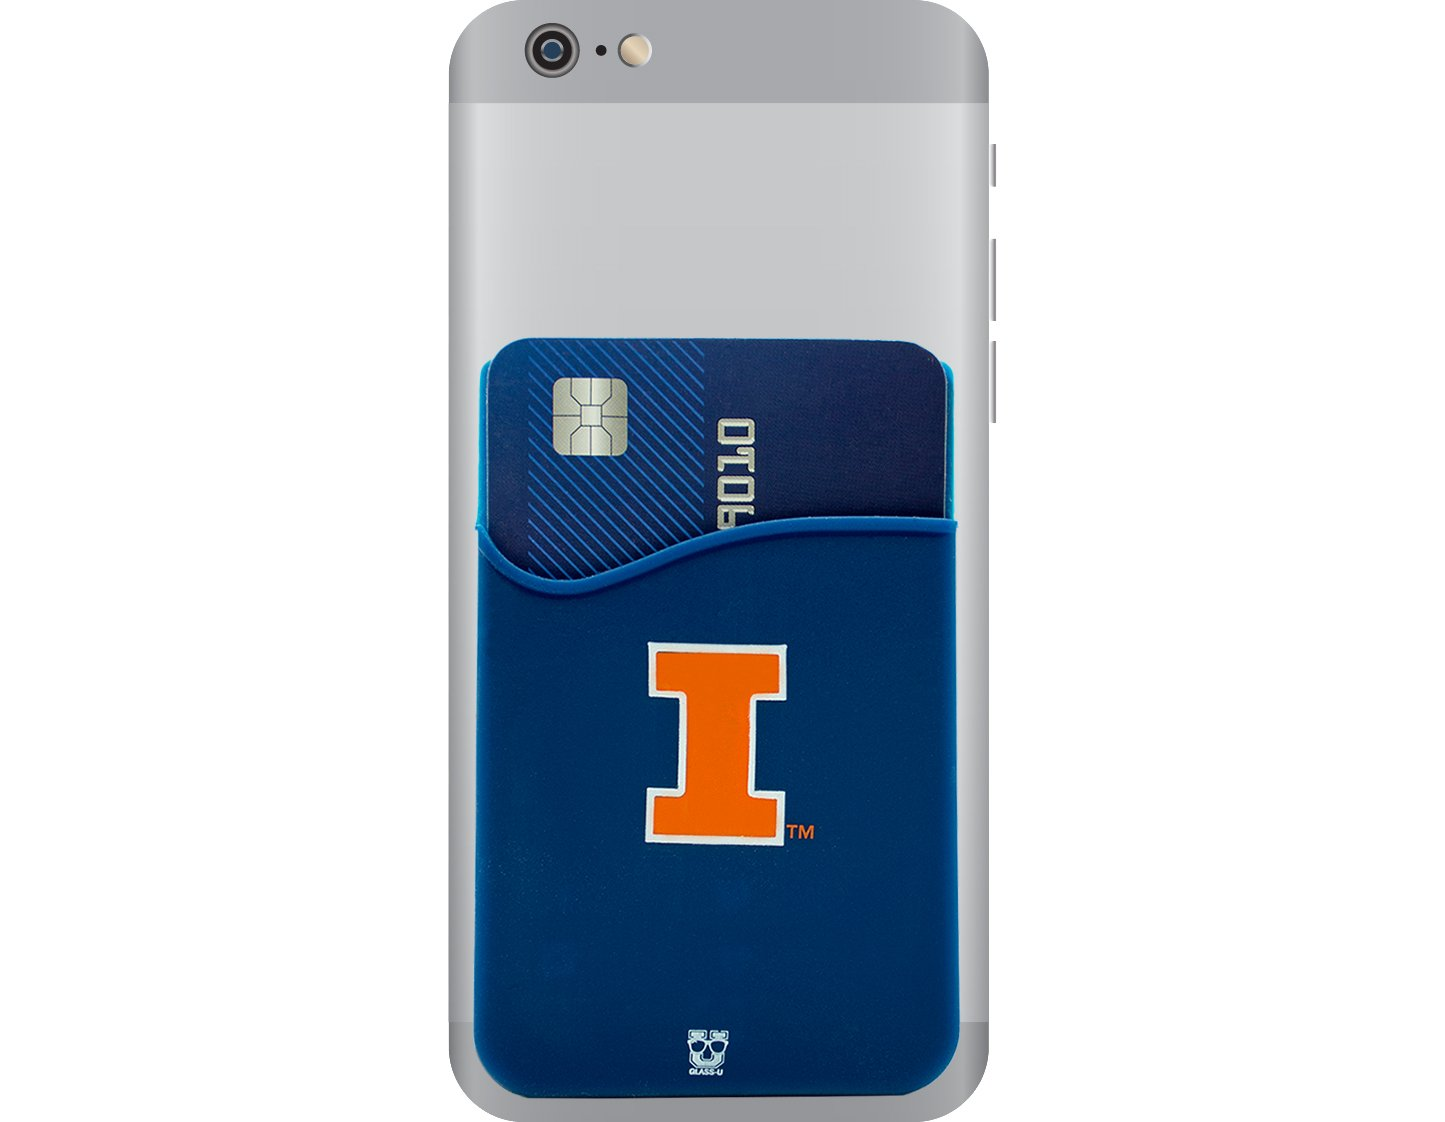 /& most Smartphones Penn State Nittany Lions Adhesive Silicone Cell Phone Wallet//Card Holder for iPhone Android Samsung Galaxy